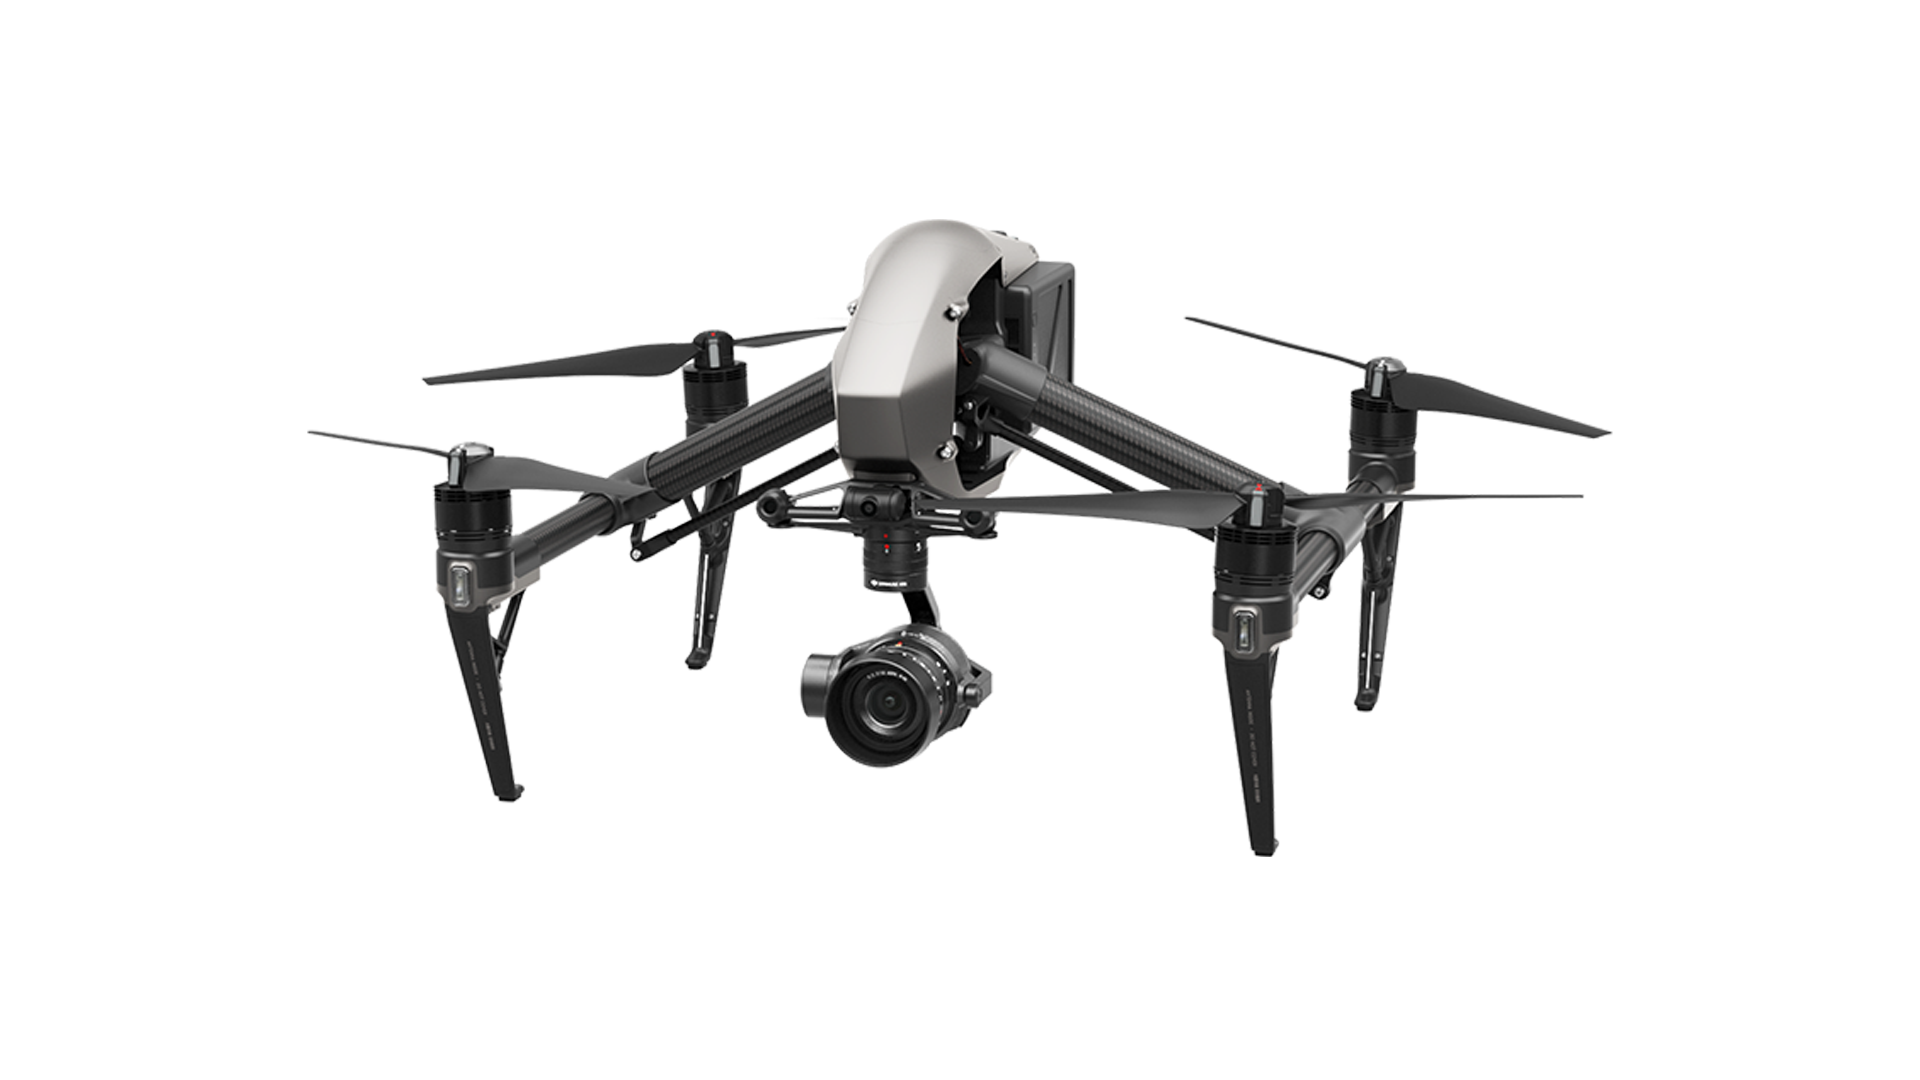 dji inspire 2 - 5.2K | 50 FPS | 100MBPSDJI's magnesium-aluminum-clad Inspire 2 Quadcopter is a powerful cinematic and photographic tool. Combining the Inspire 2 with the X5S gimbal camera yields cinema-grade images.